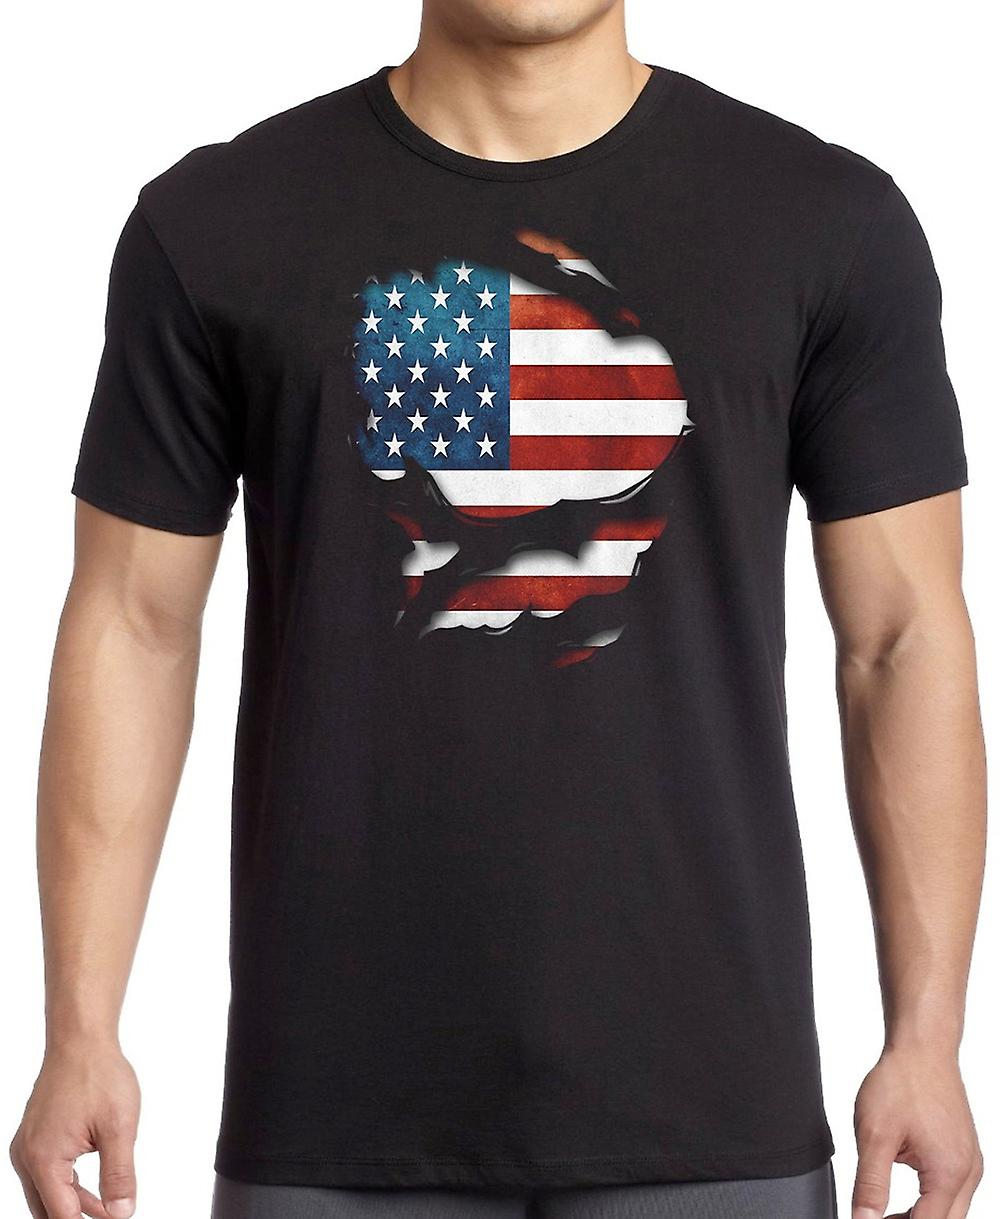 USA American Ripped Effect Under Shirt Women T Shirt